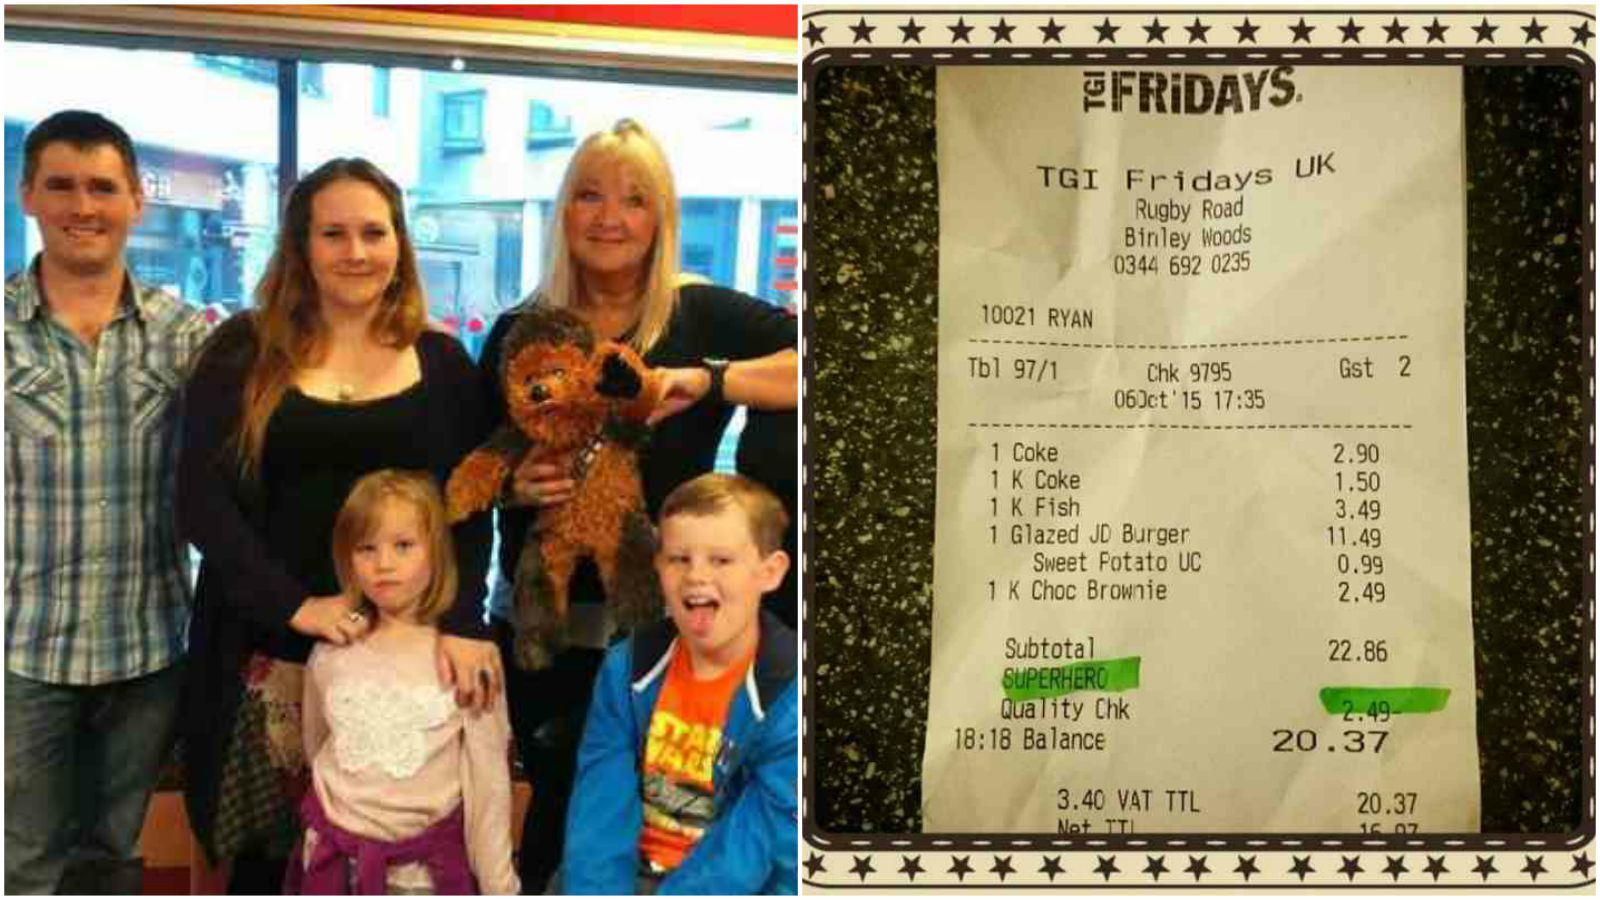 Autistic Boy Gets Special Surprise from the Staff at TGI Fridays.